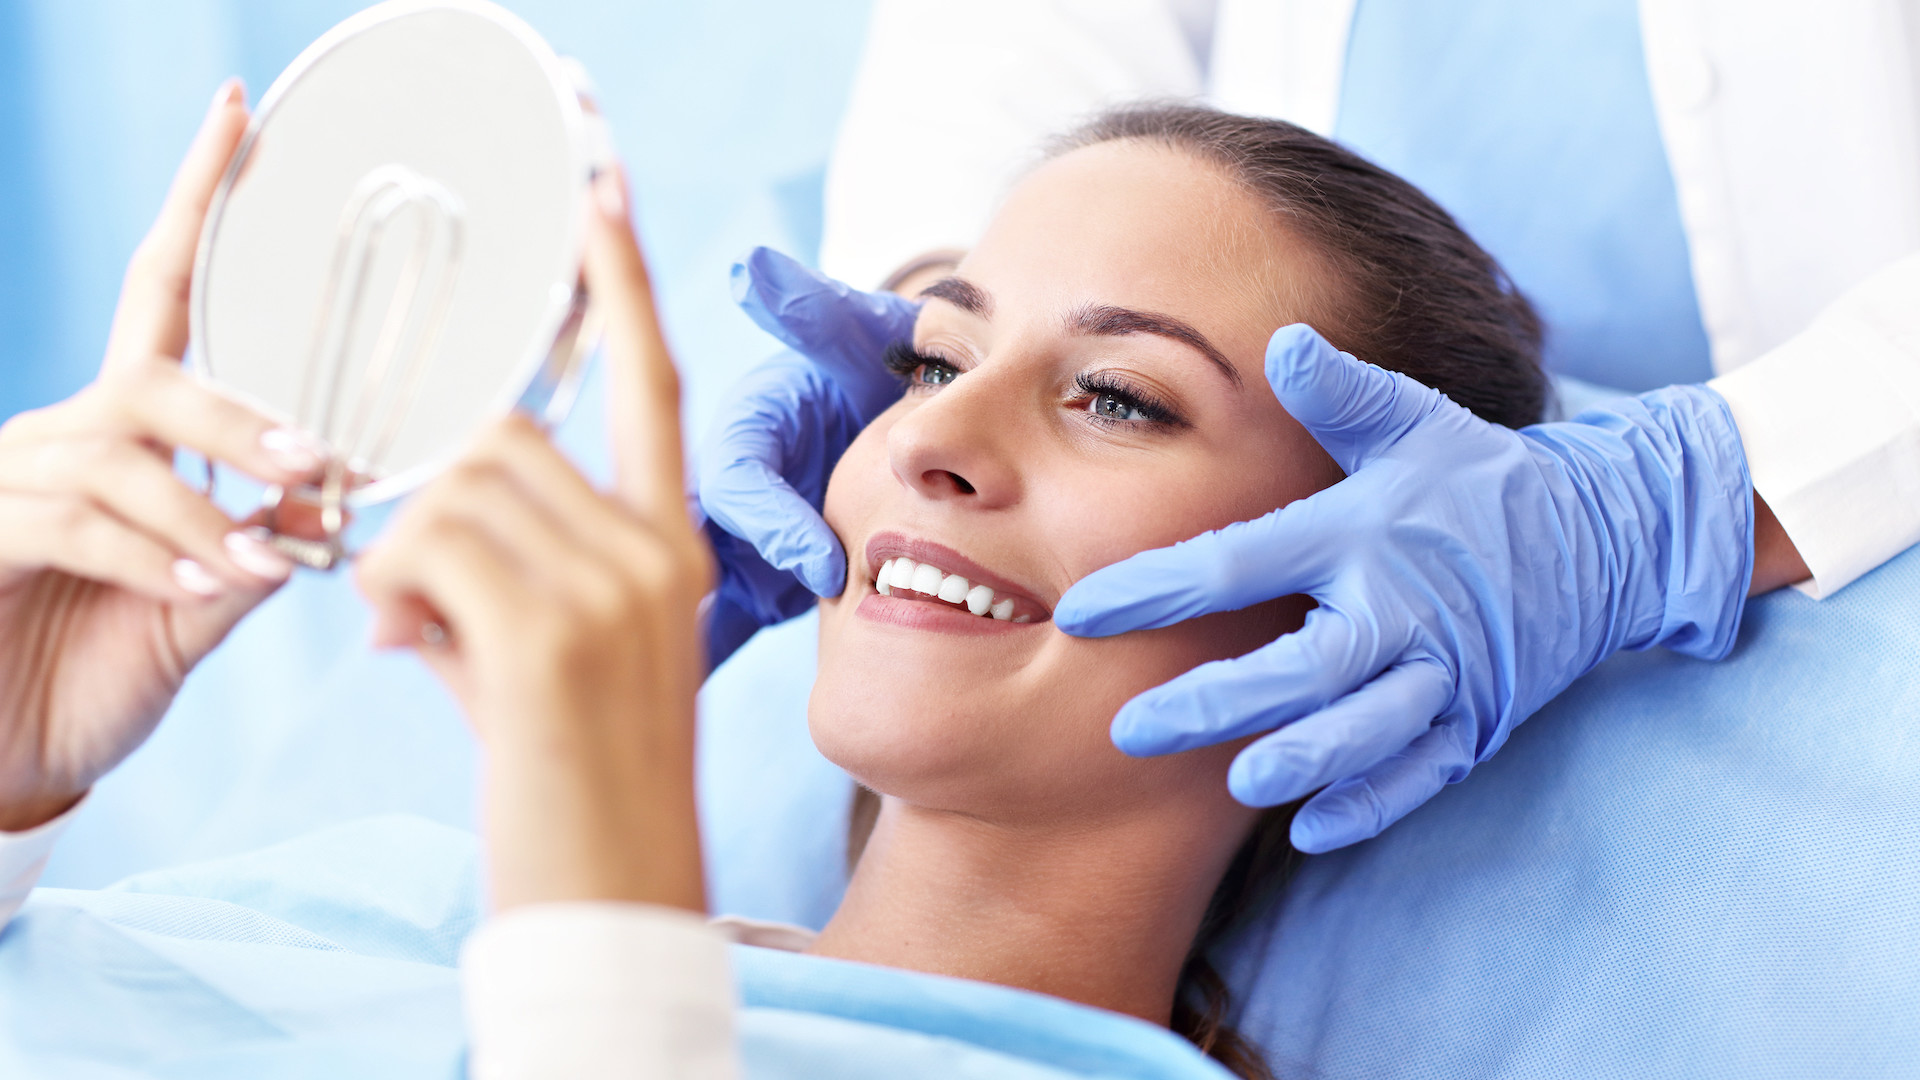 Complete Study On The Teeth Whitening Services